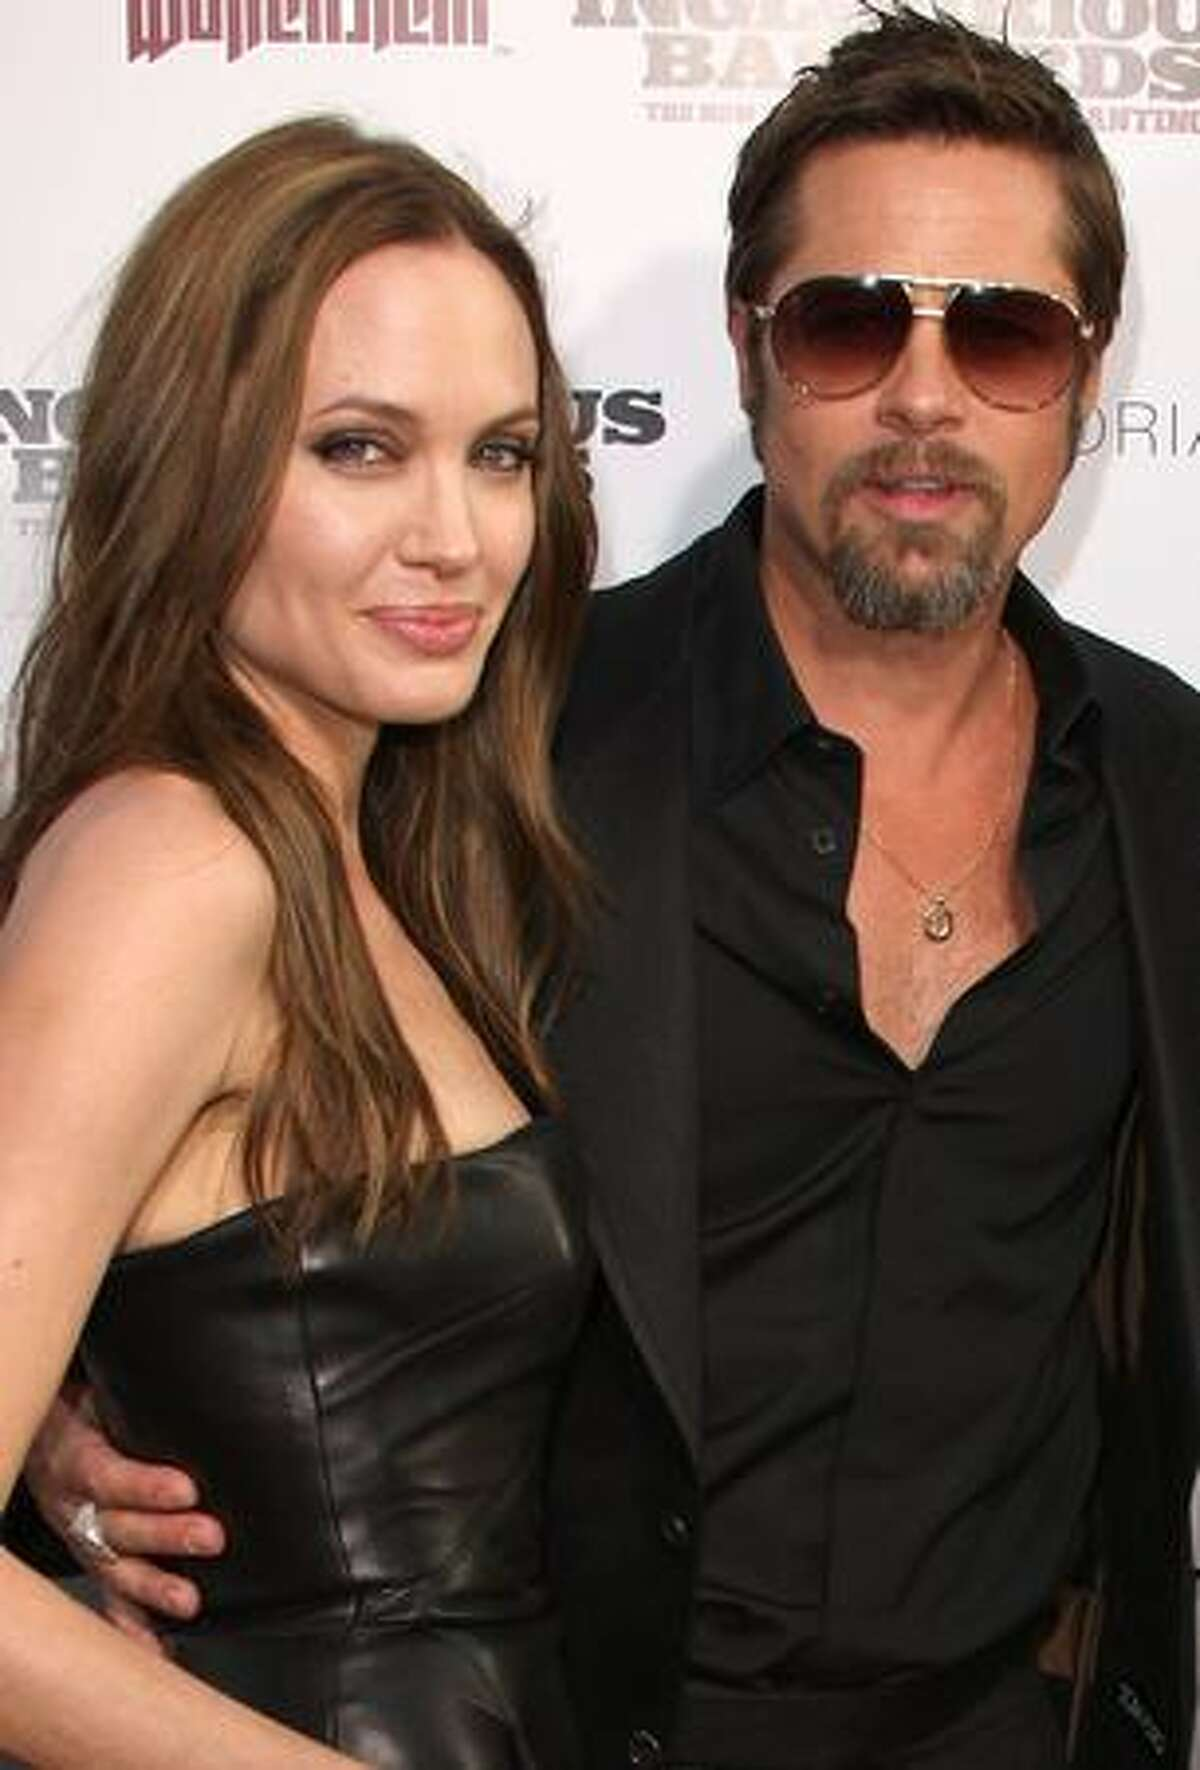 Actress Angelina Jolie (L) and actor Brad Pitt arrive at the premiere of Weinstein Co.'s 'Inglourious Basterds' held at Grauman's Chinese Theatre in Hollywood, California.